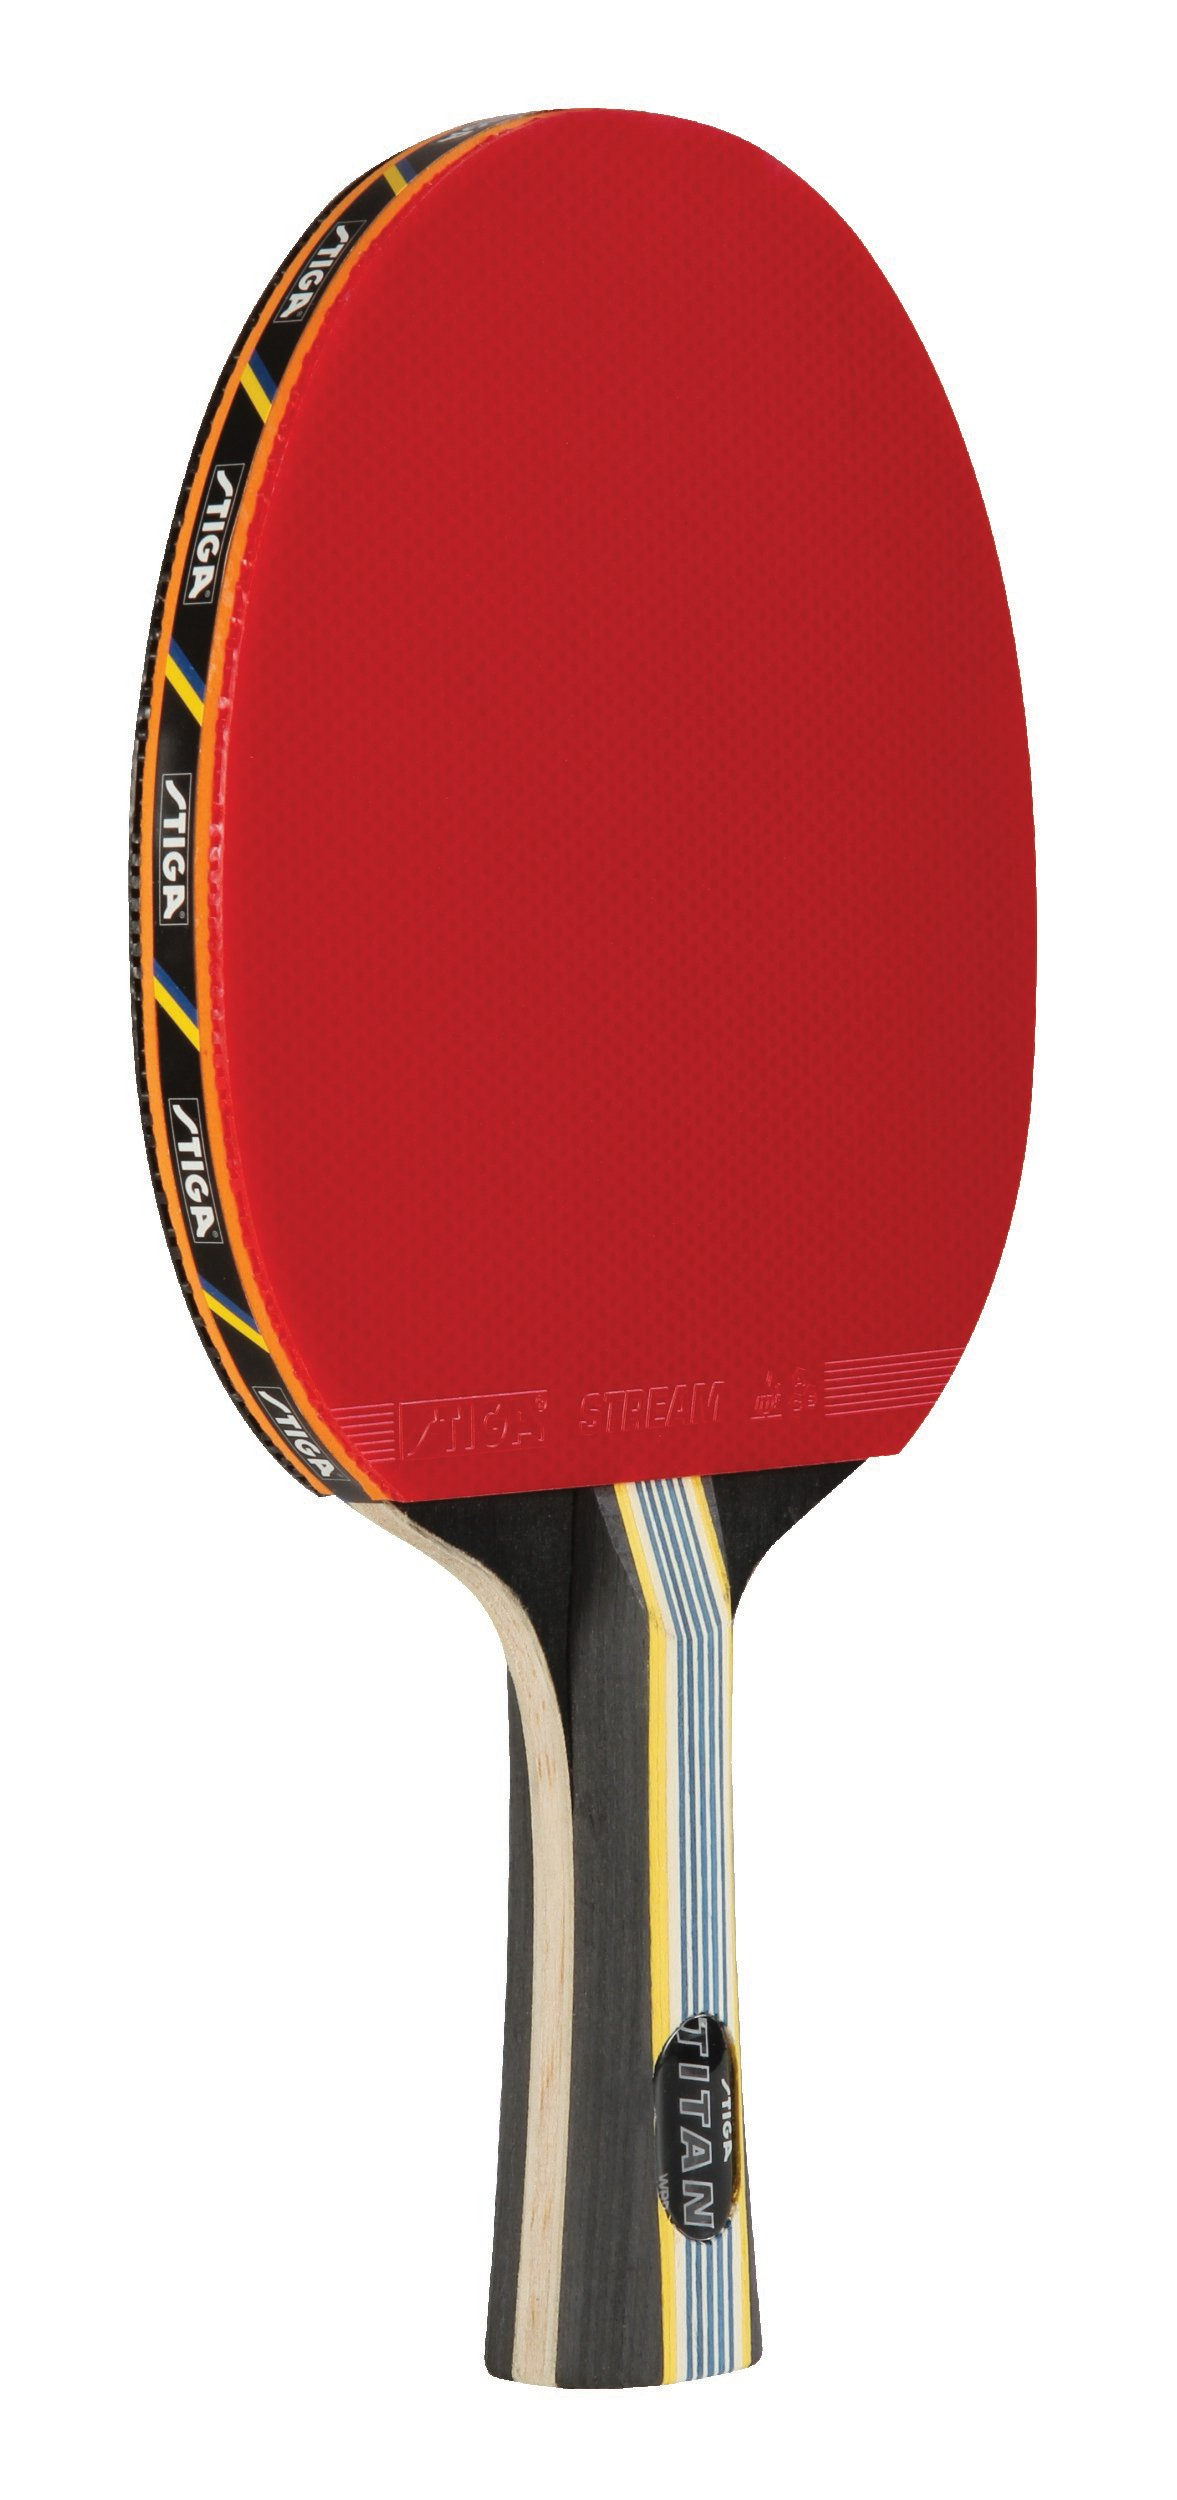 STIGA Tournament-Quality Titan Table Tennis Racket with Crystal Technology to Harden Blade for Increased Speed, 2mm Sponge and Concave Italian Composite Handle